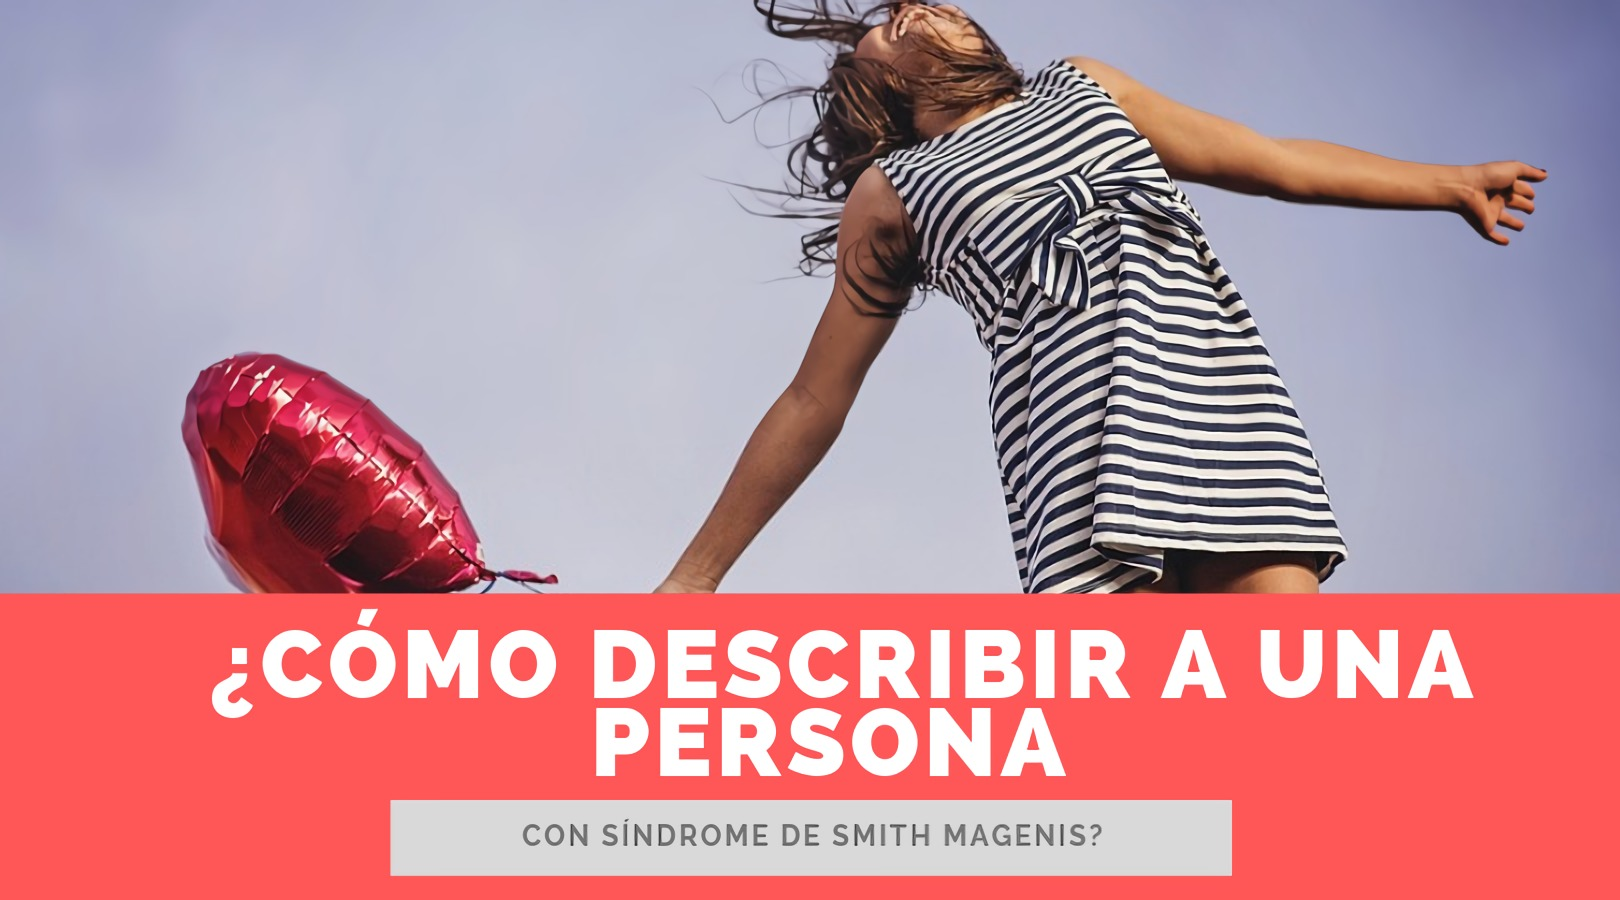 ¿Cómo describir a una persona con síndrome de Smith Magenis?